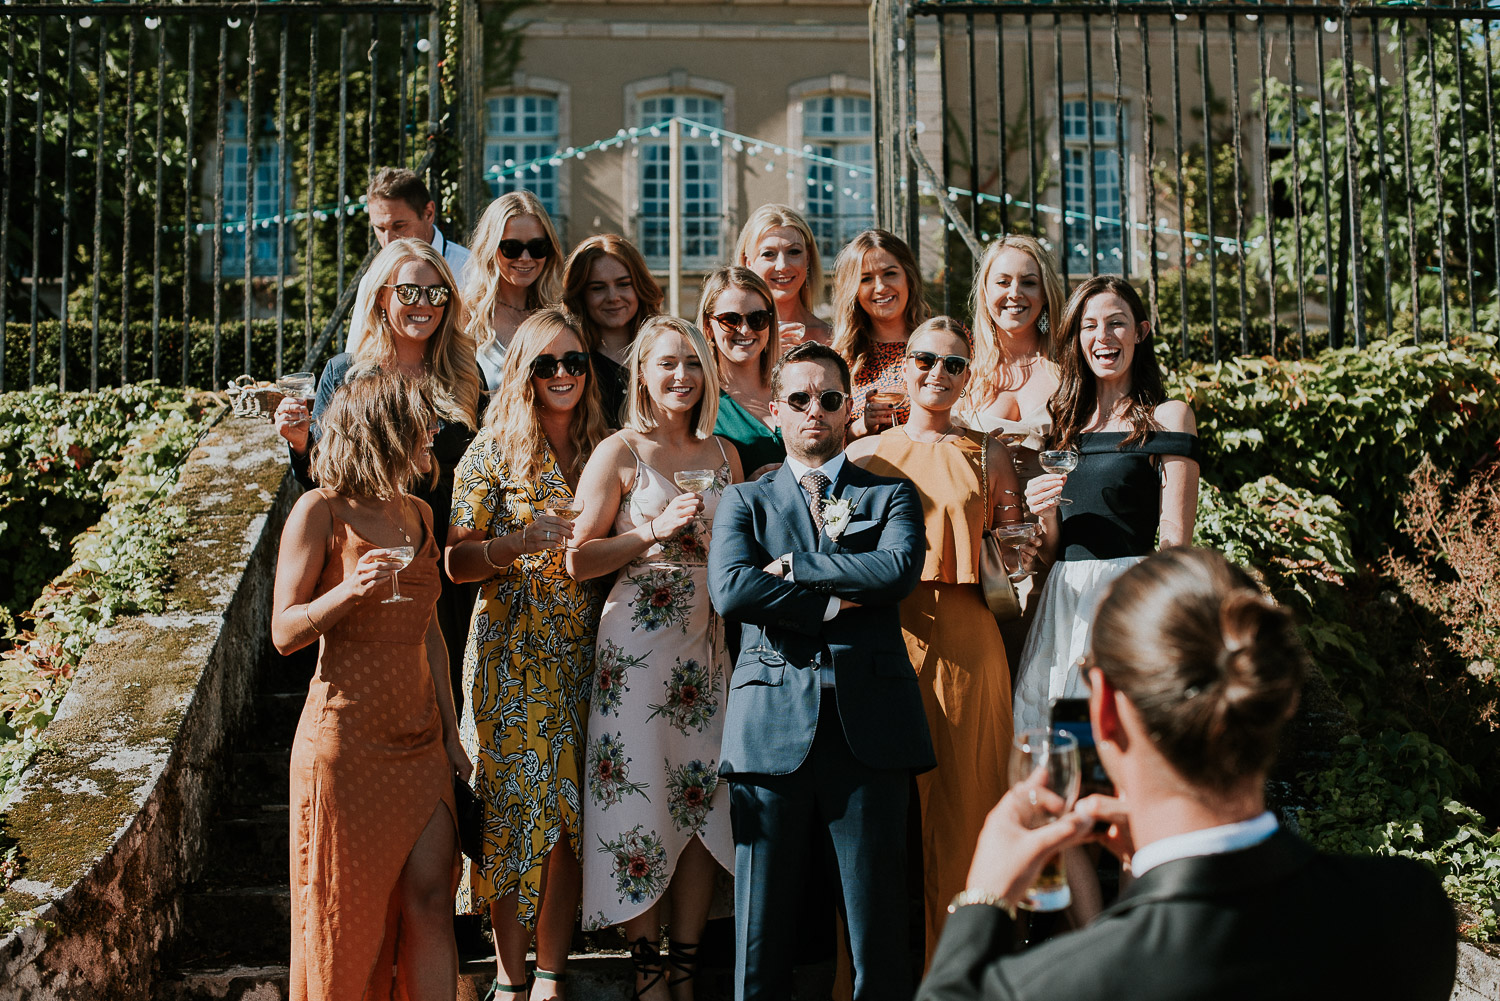 bergerac_wedding_katy_webb_photography_france_UK106